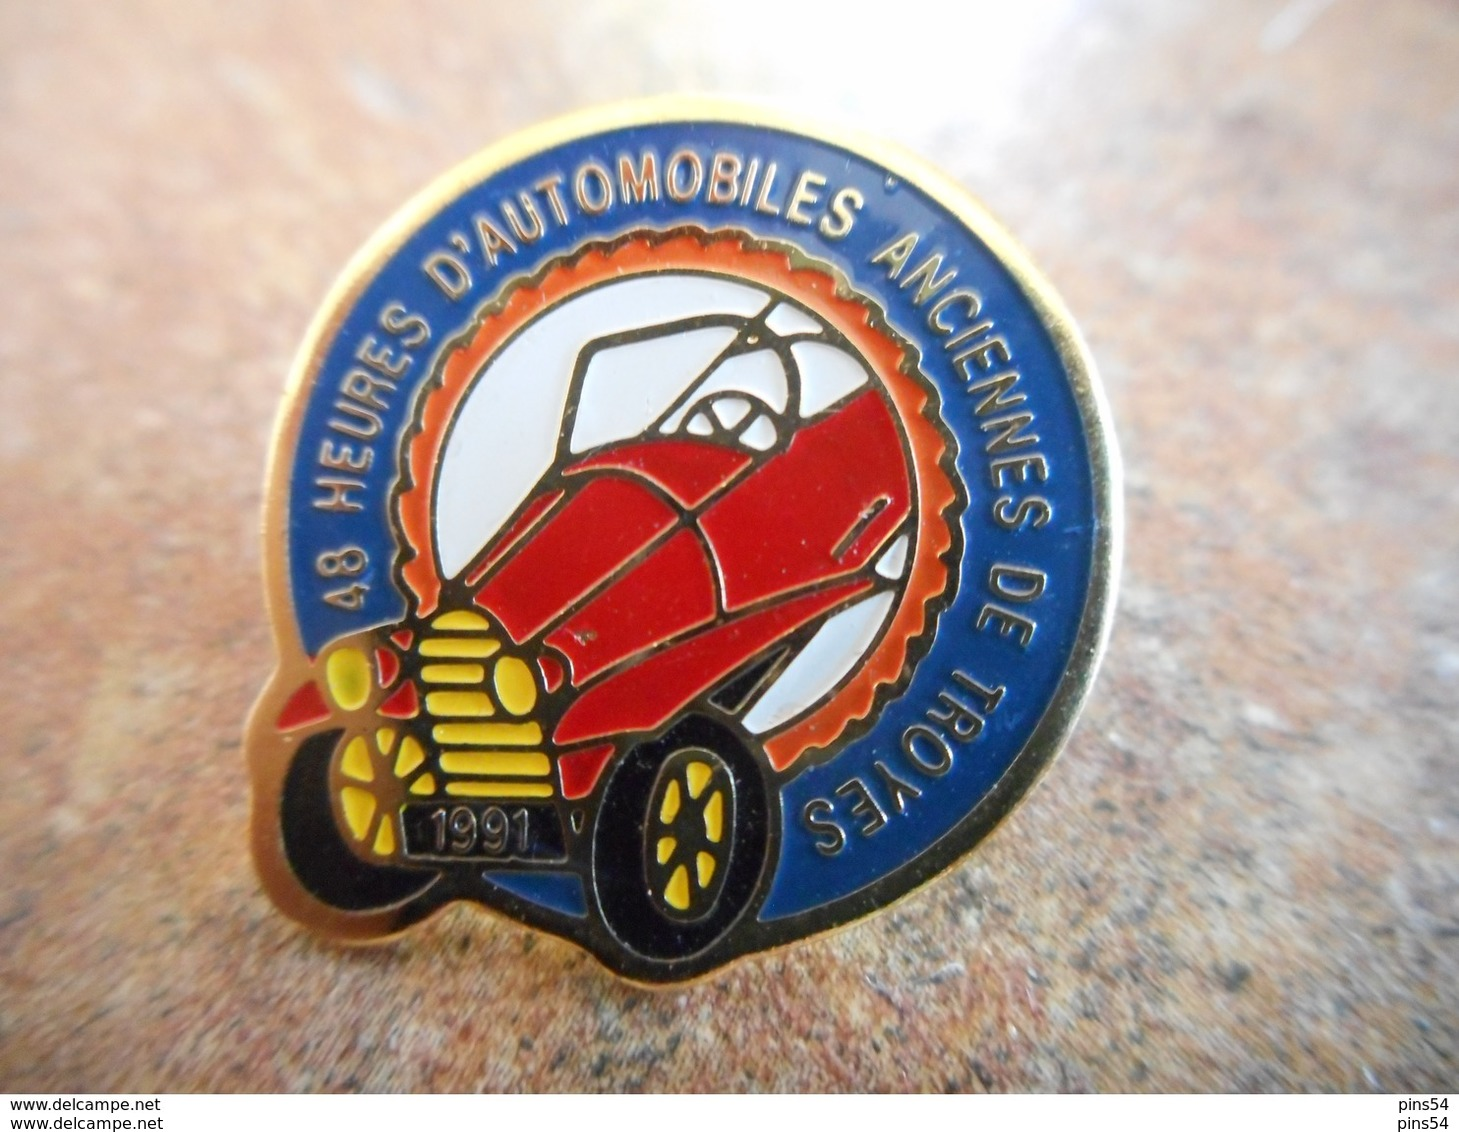 A012 -- Pin's 48 Heures D'Automobile Anciennes De Troyes - Rally